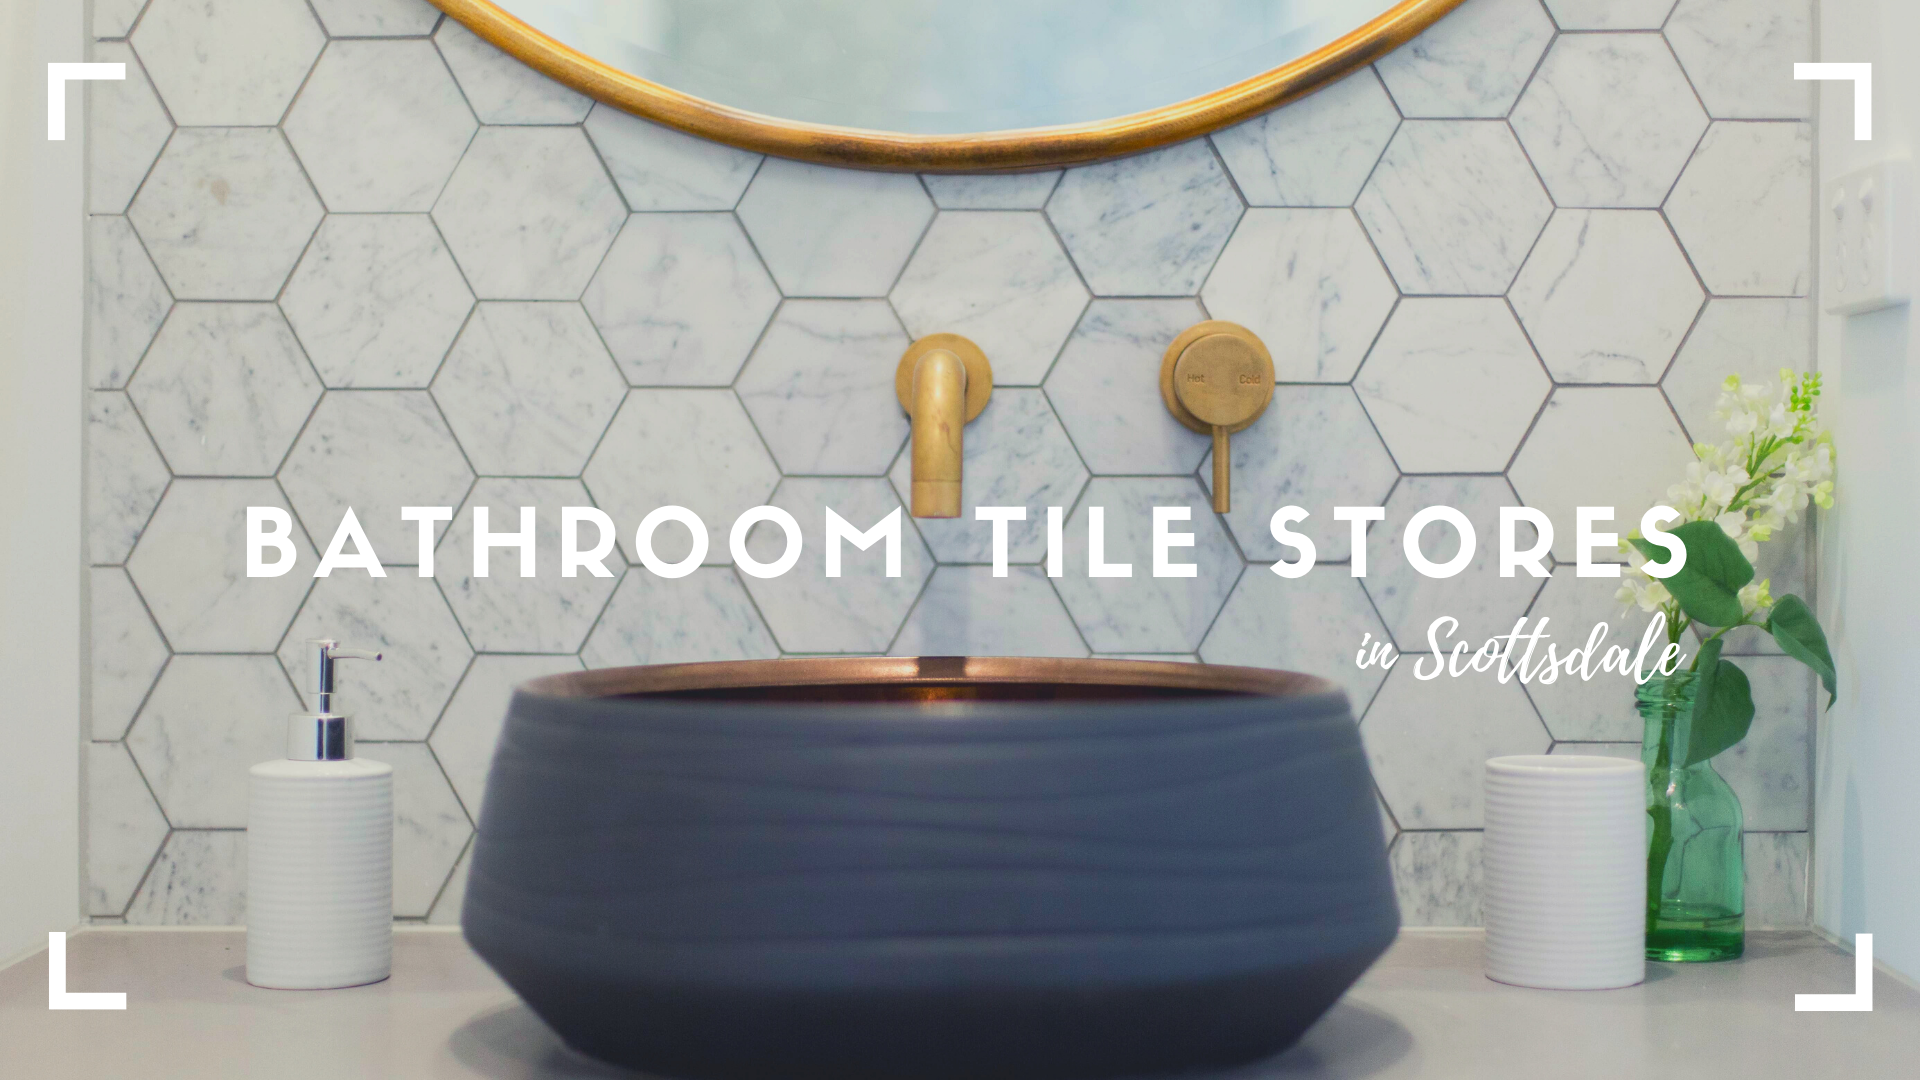 Bathroom Tile Stores in Scottsdale